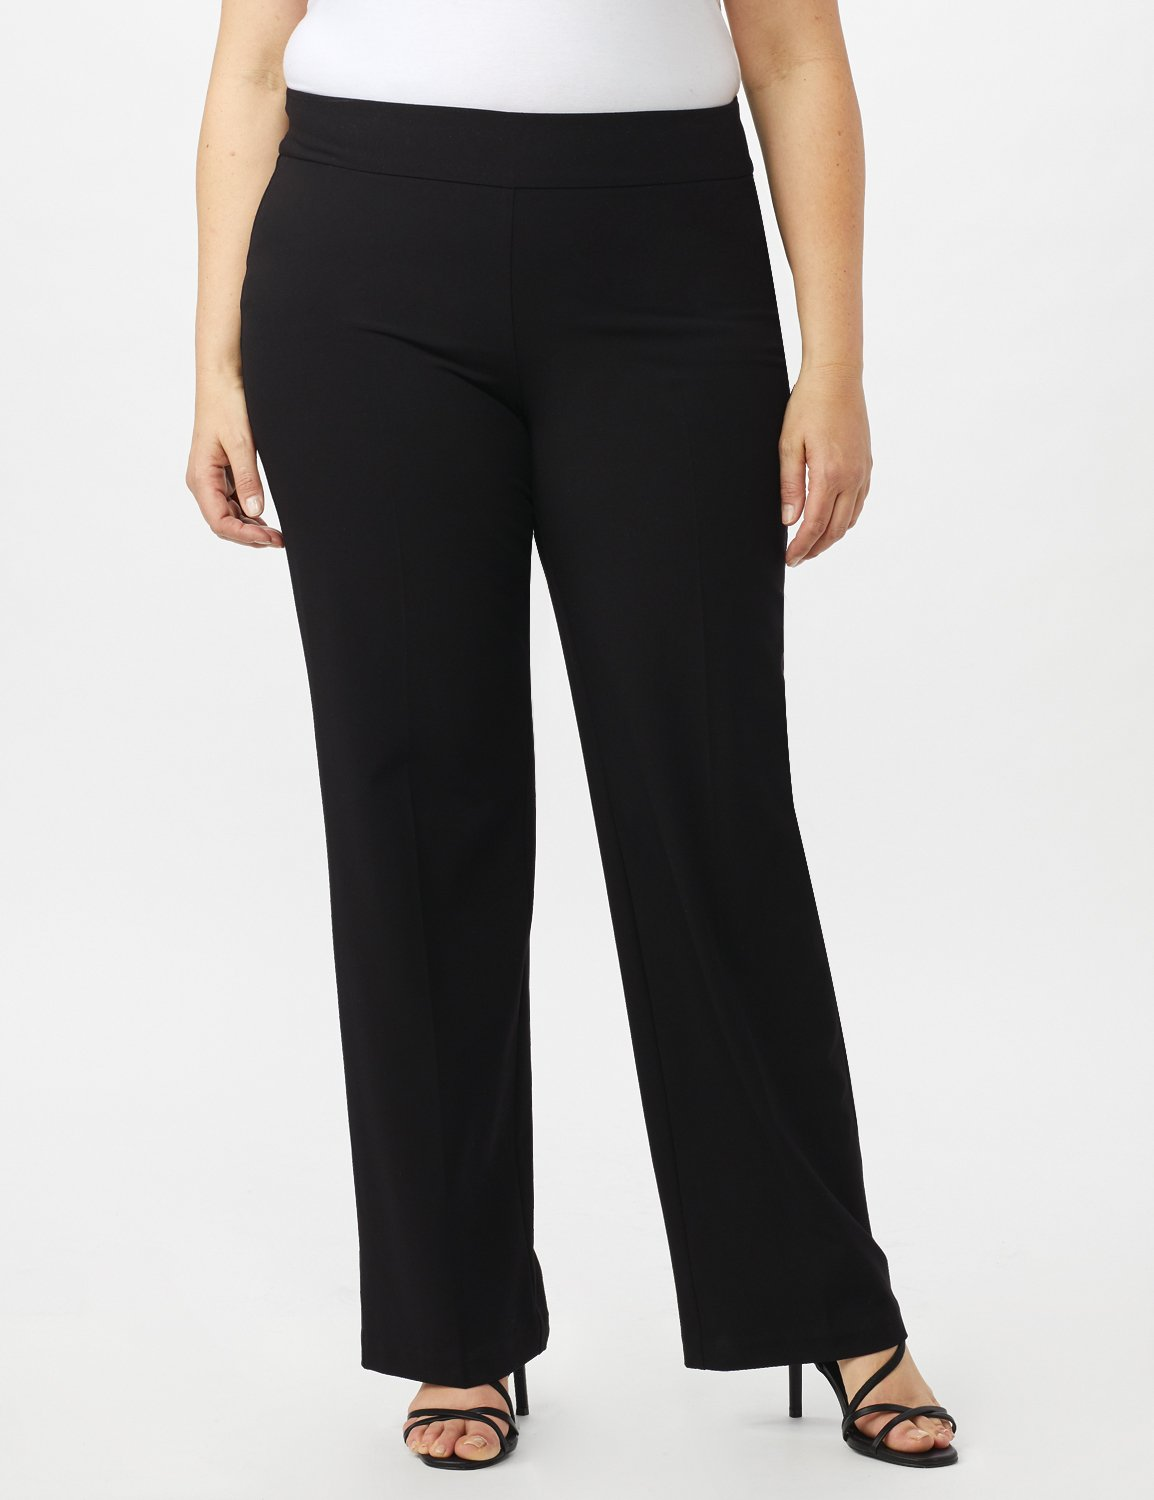 Secret Agent Tummy Control Pull On Pants - Average Length -Black - Front